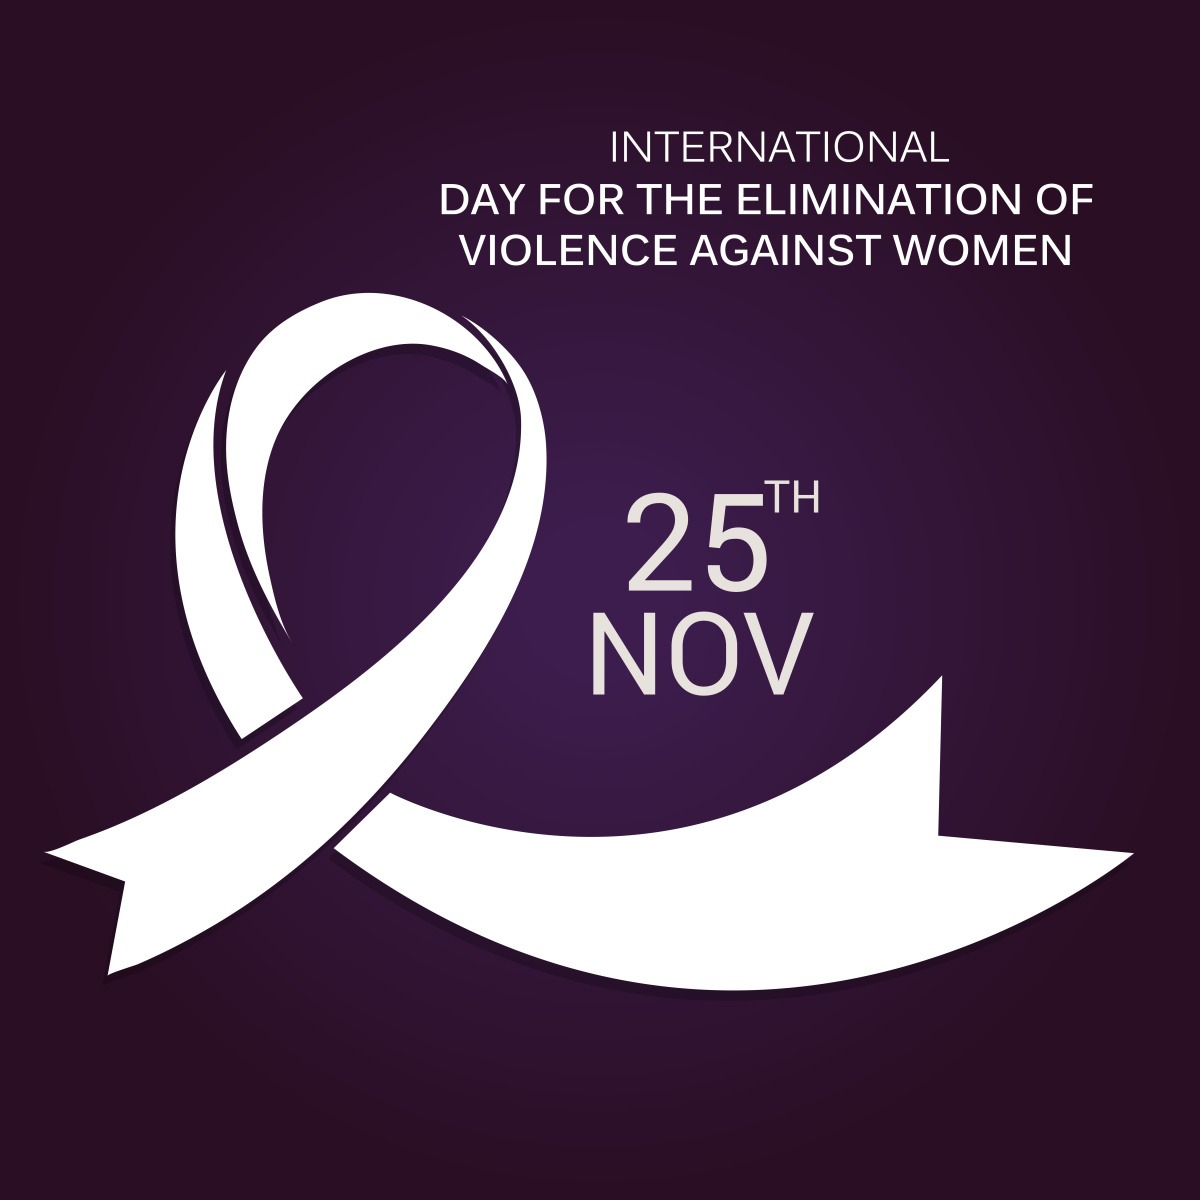 November 25 - International Day for the Elimination of Violence against Women